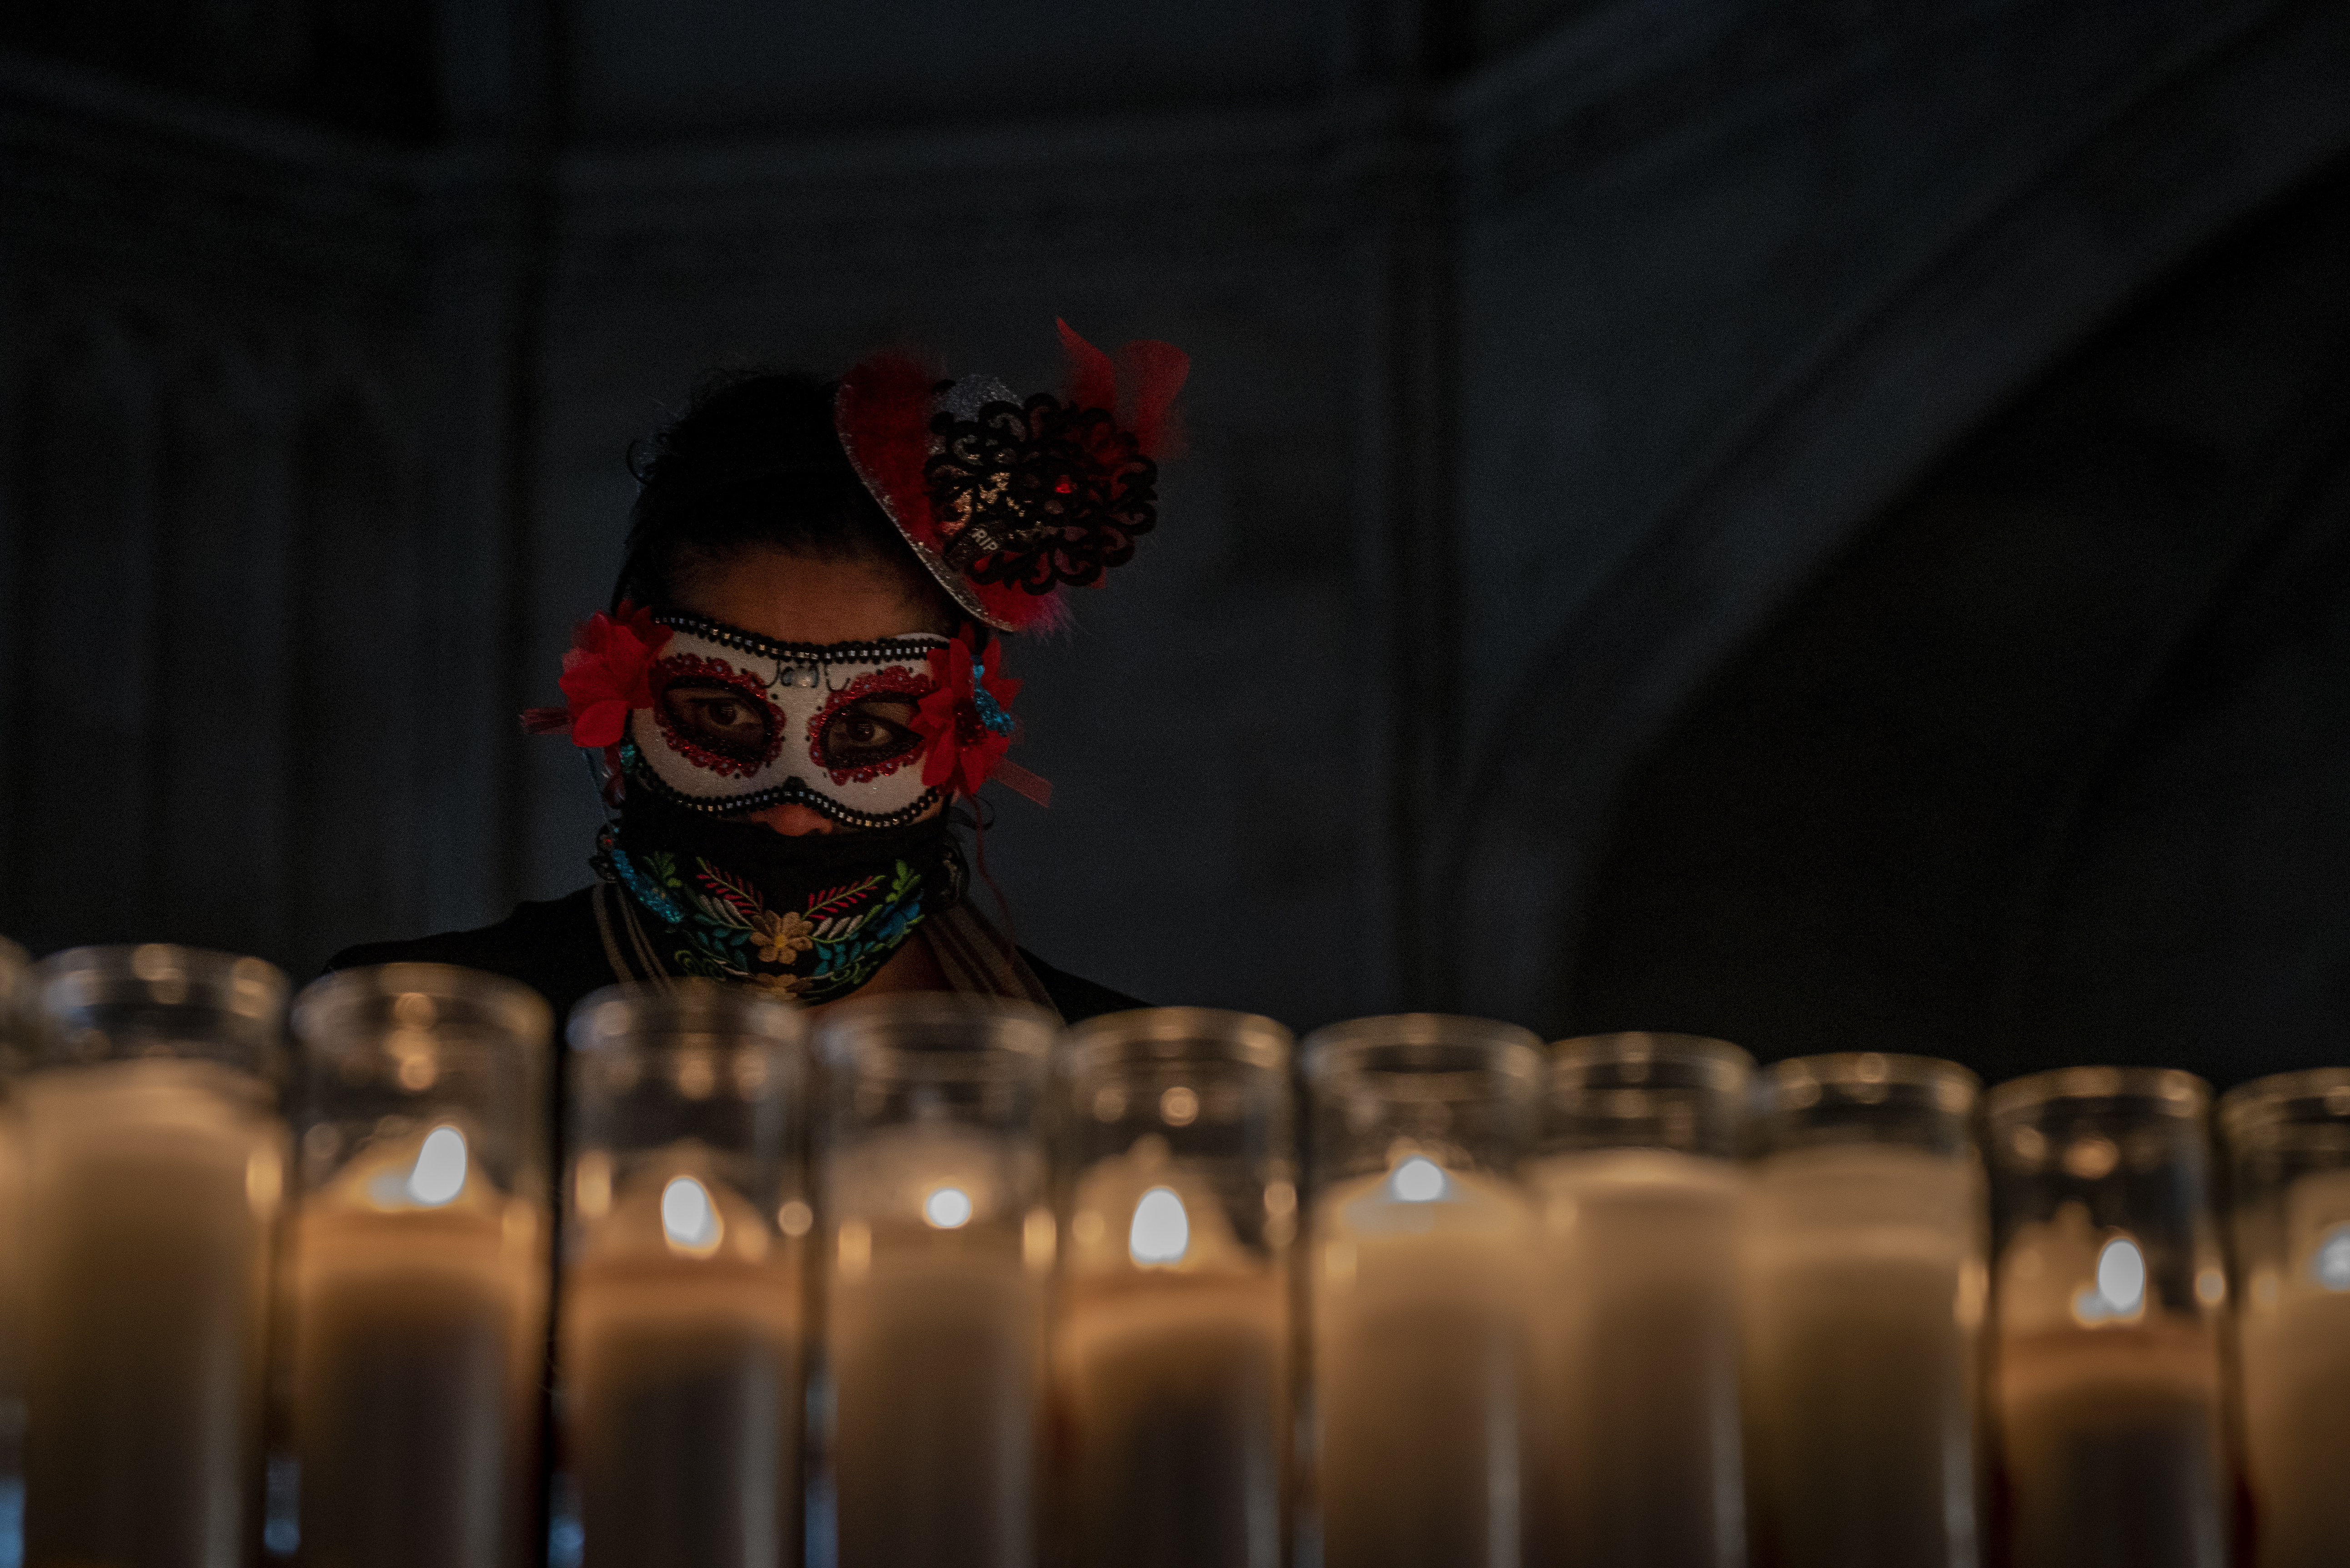 Lorie Erlitz-Pagdon, 47, lights a veladora in memory of her family at the Green-Wood Historic Chapel, Oct. 25, 2020.